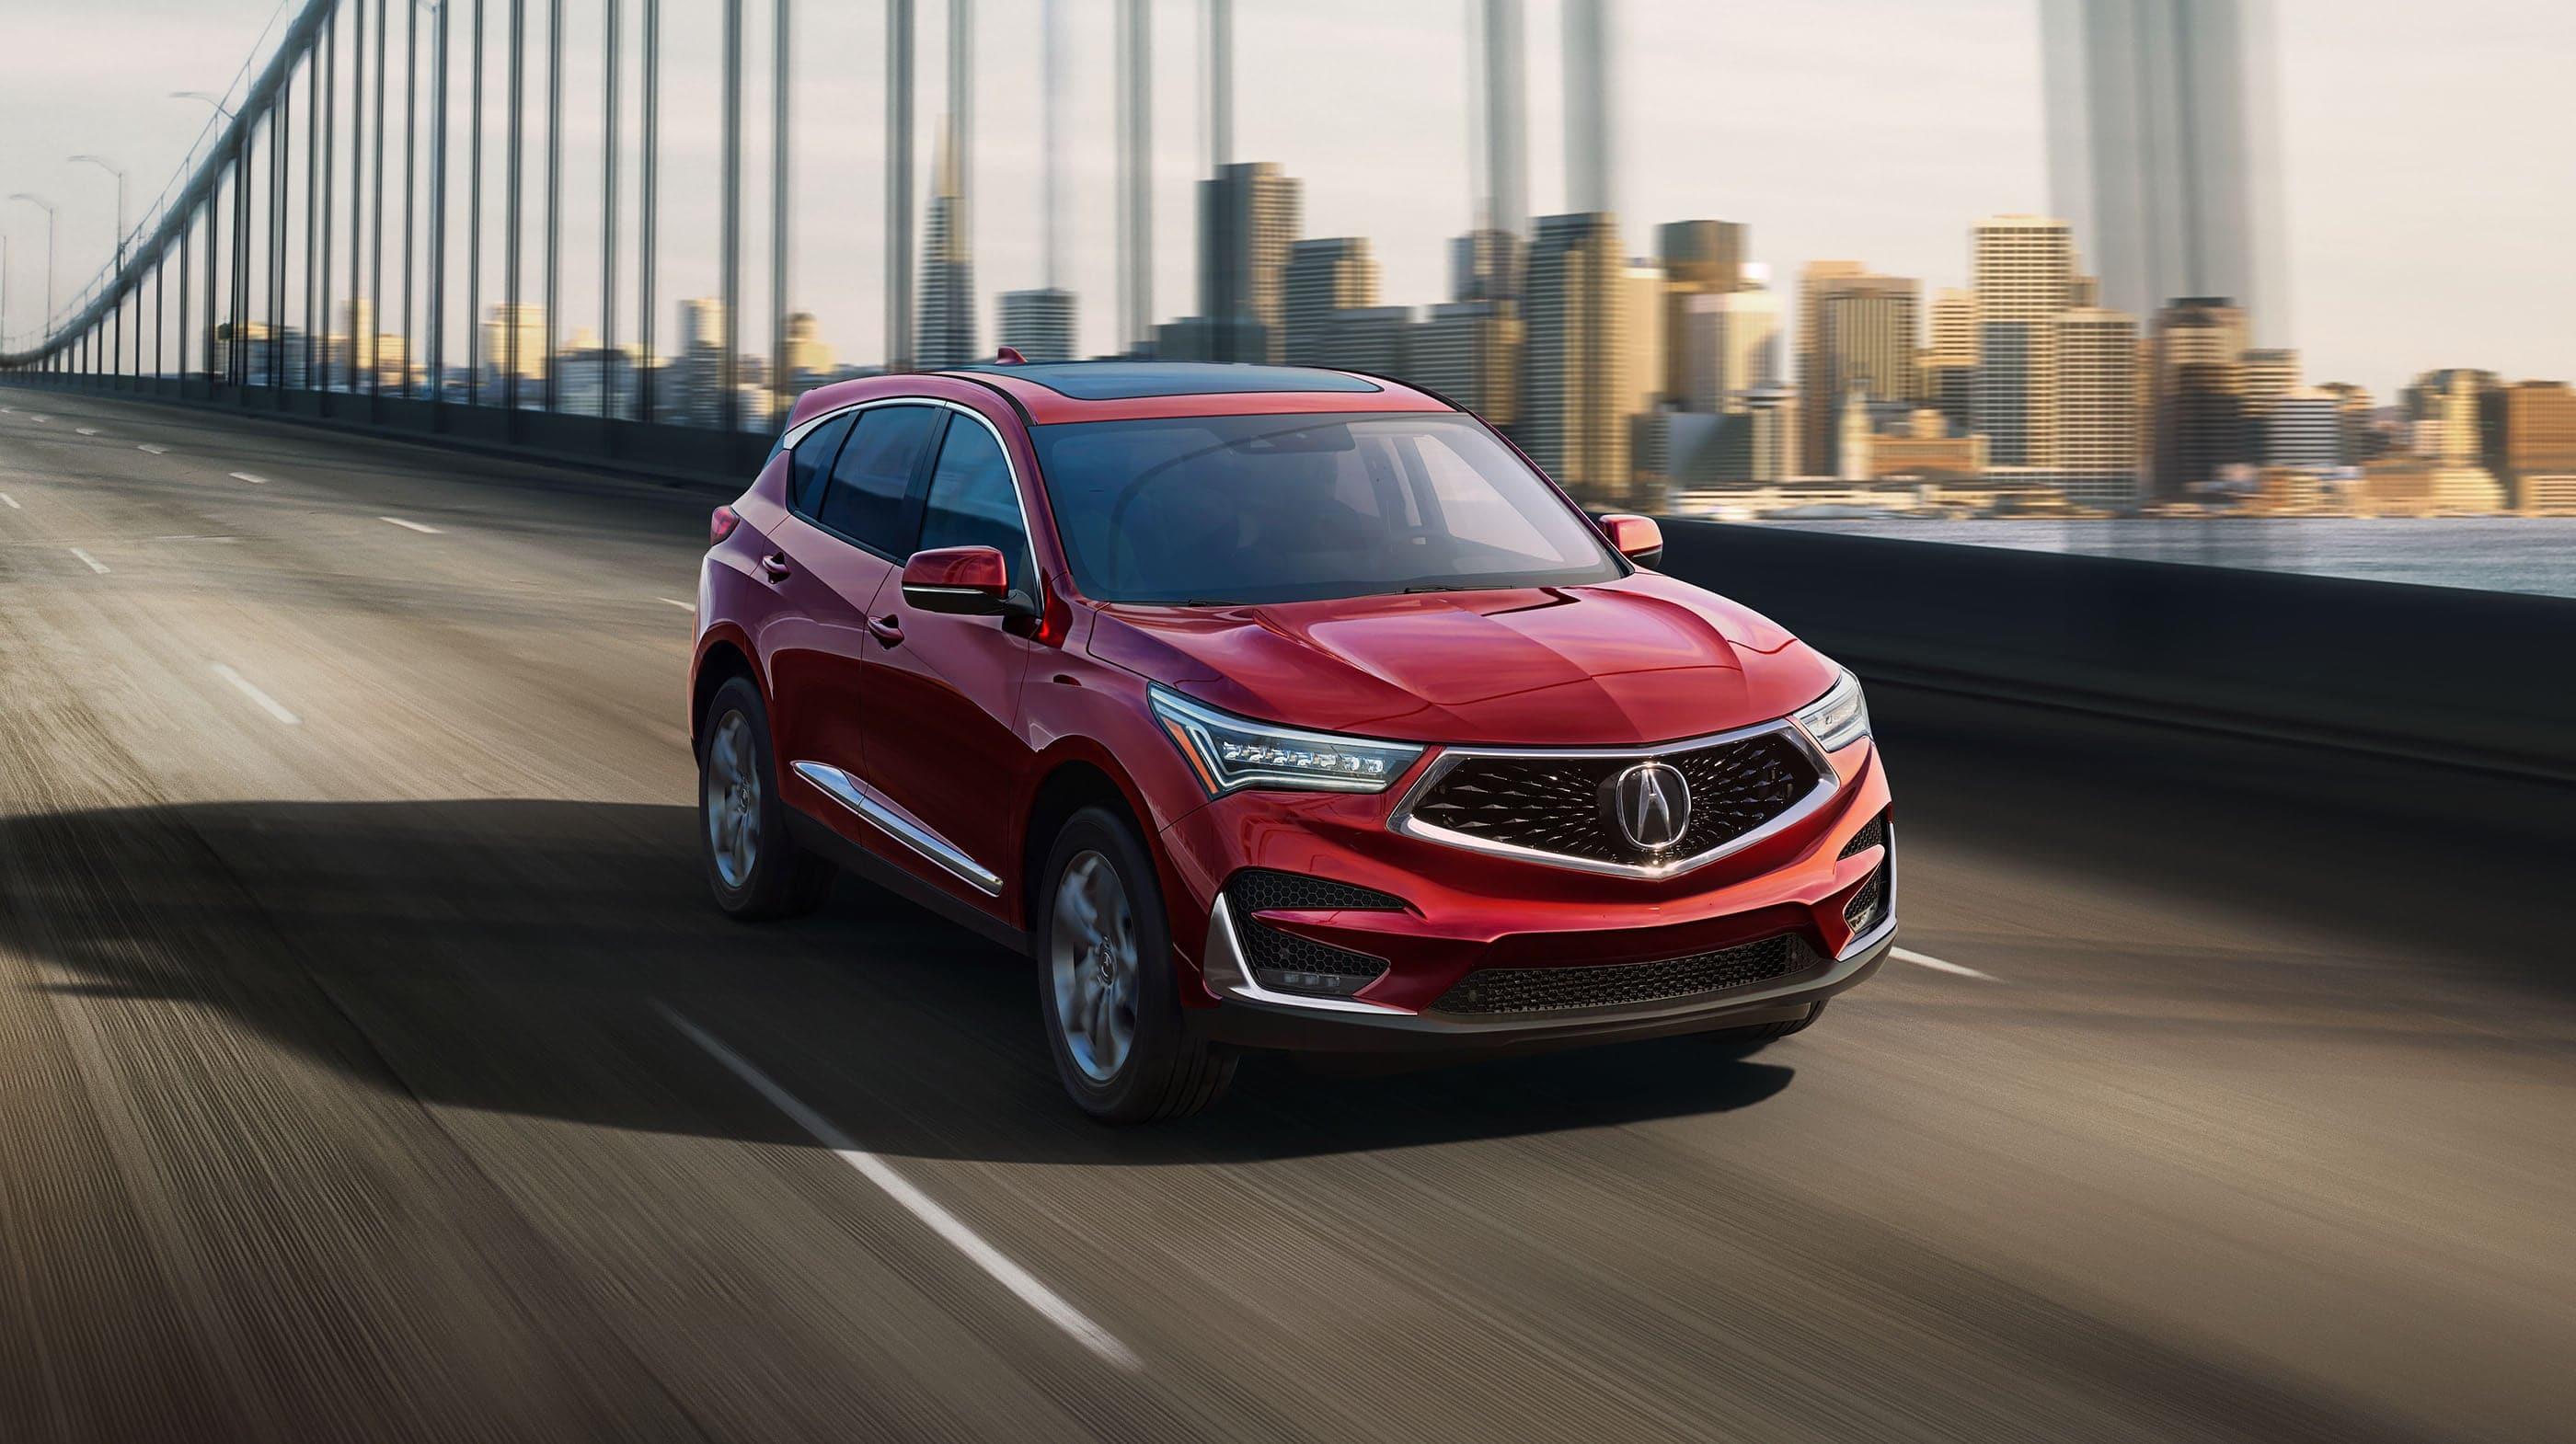 2020 Acura RDX for Sale near Chicago, IL